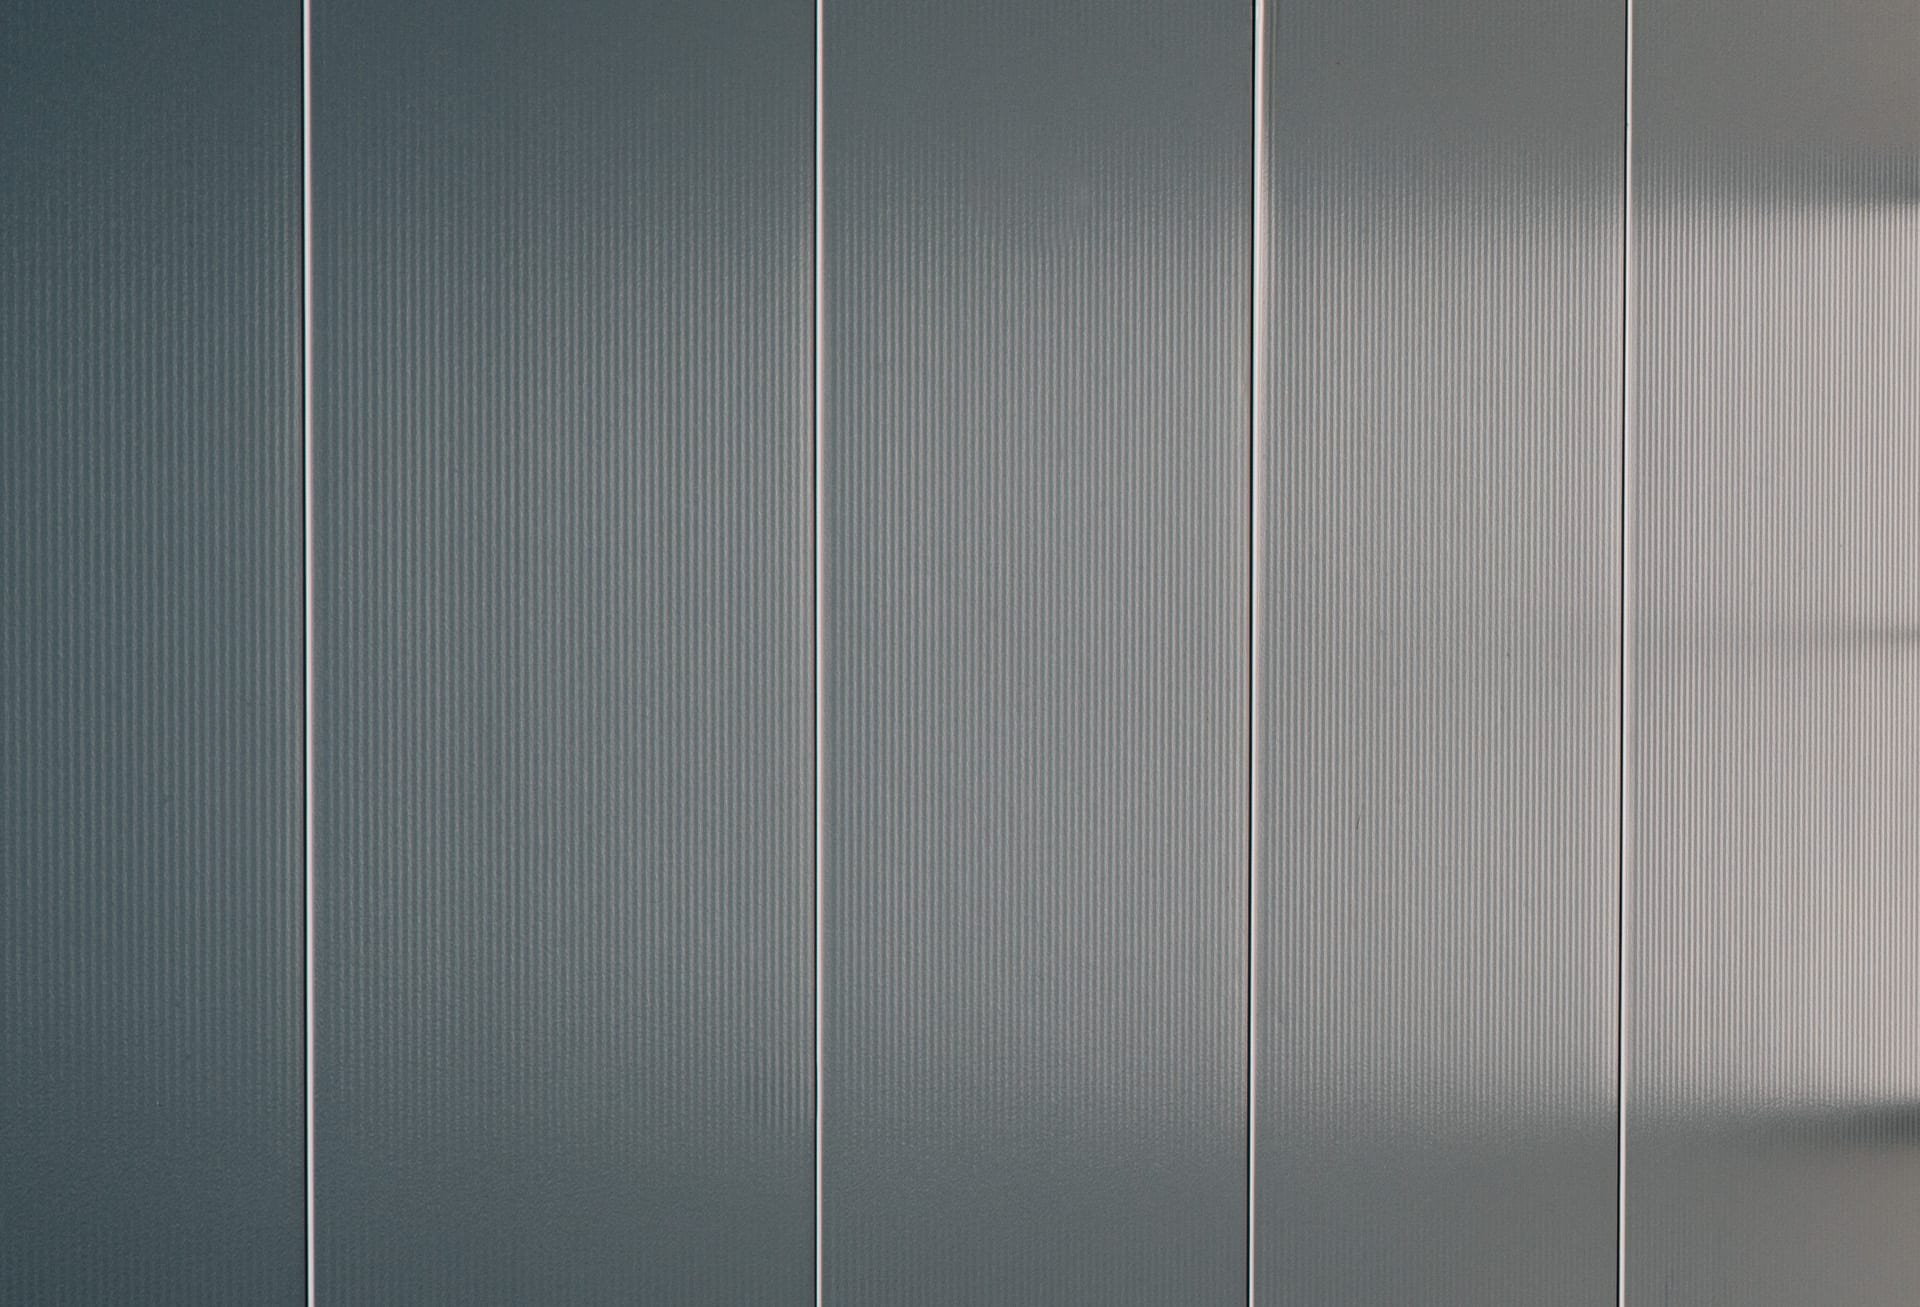 Metallic Wall Paneling : Insulated metal panels imps imark architectural metals